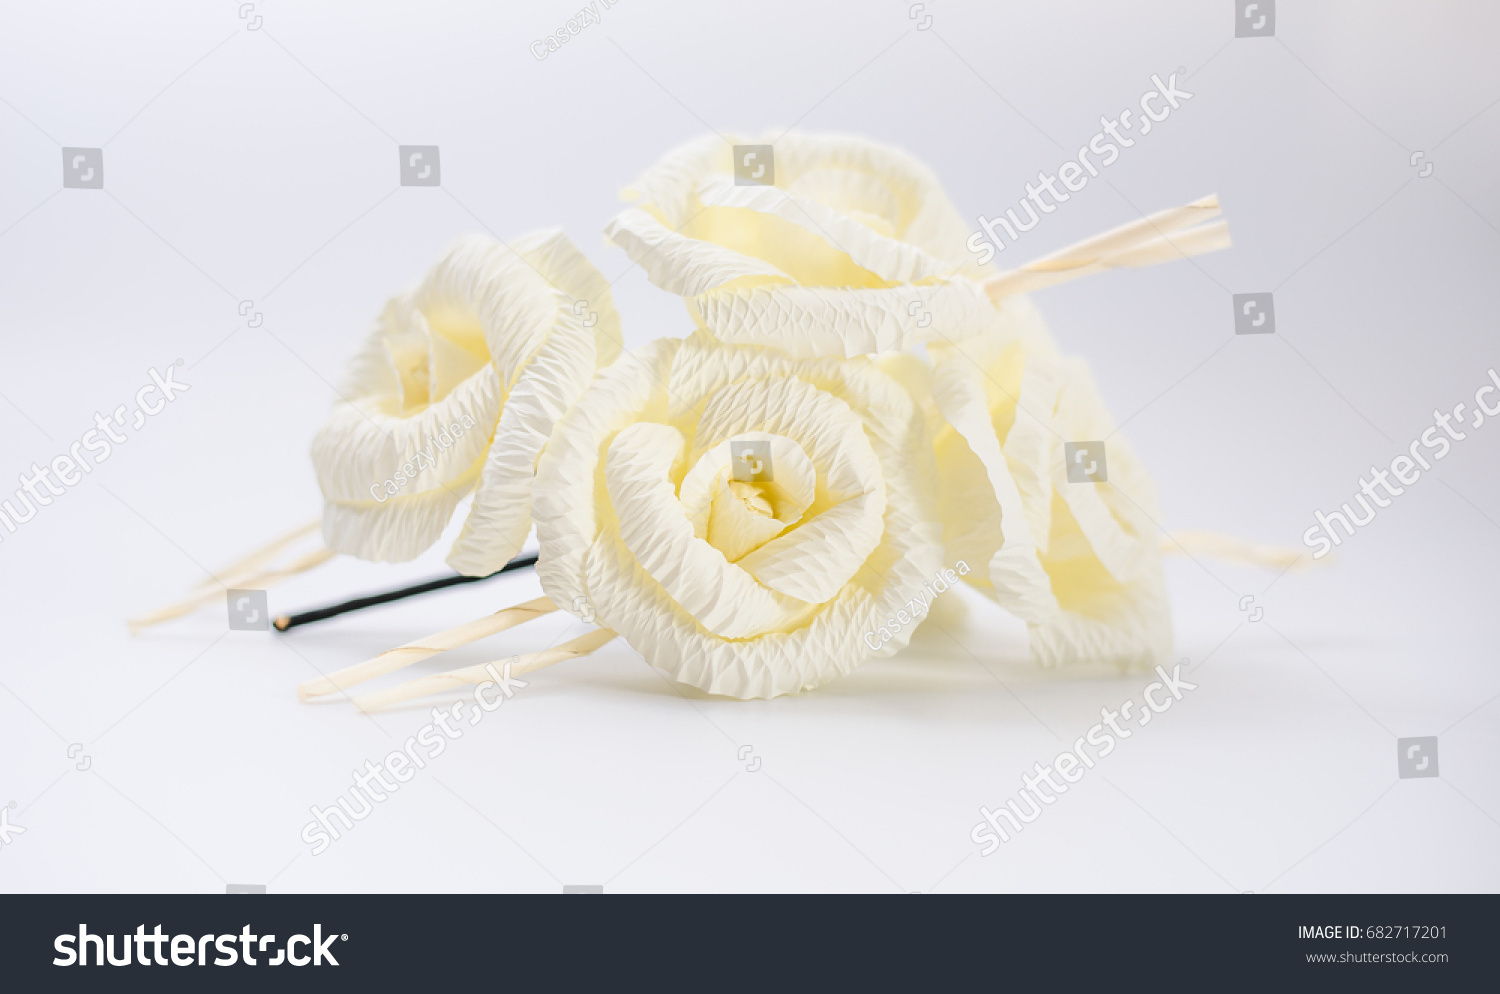 Chang silk flower image collections flower decoration ideas chang silk flower choice image flower decoration ideas chang silk flower images flower decoration ideas chang mightylinksfo